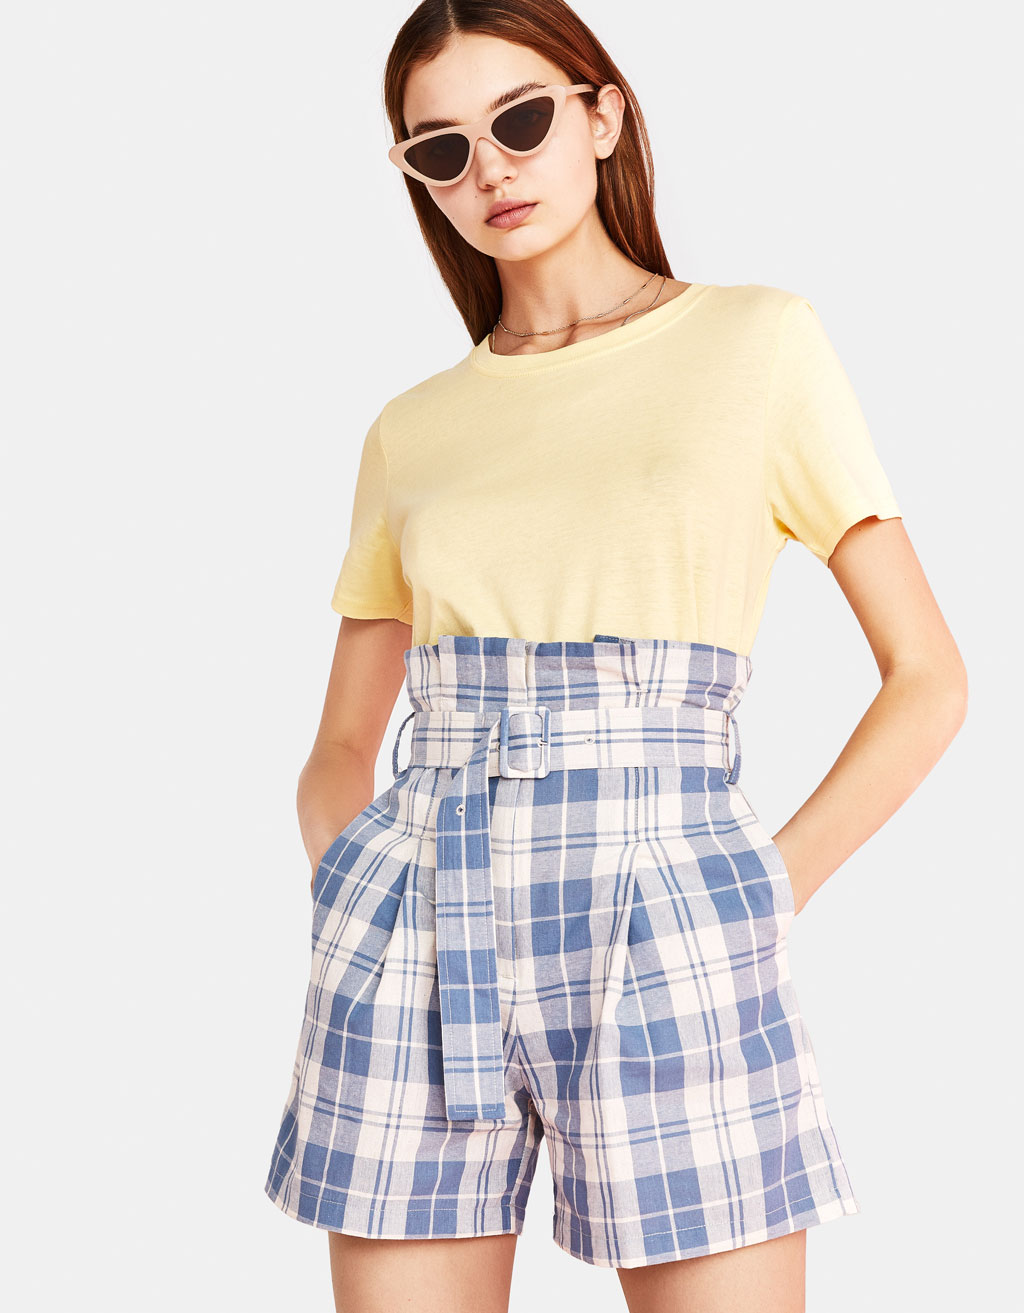 Checked Bermuda shorts with belt